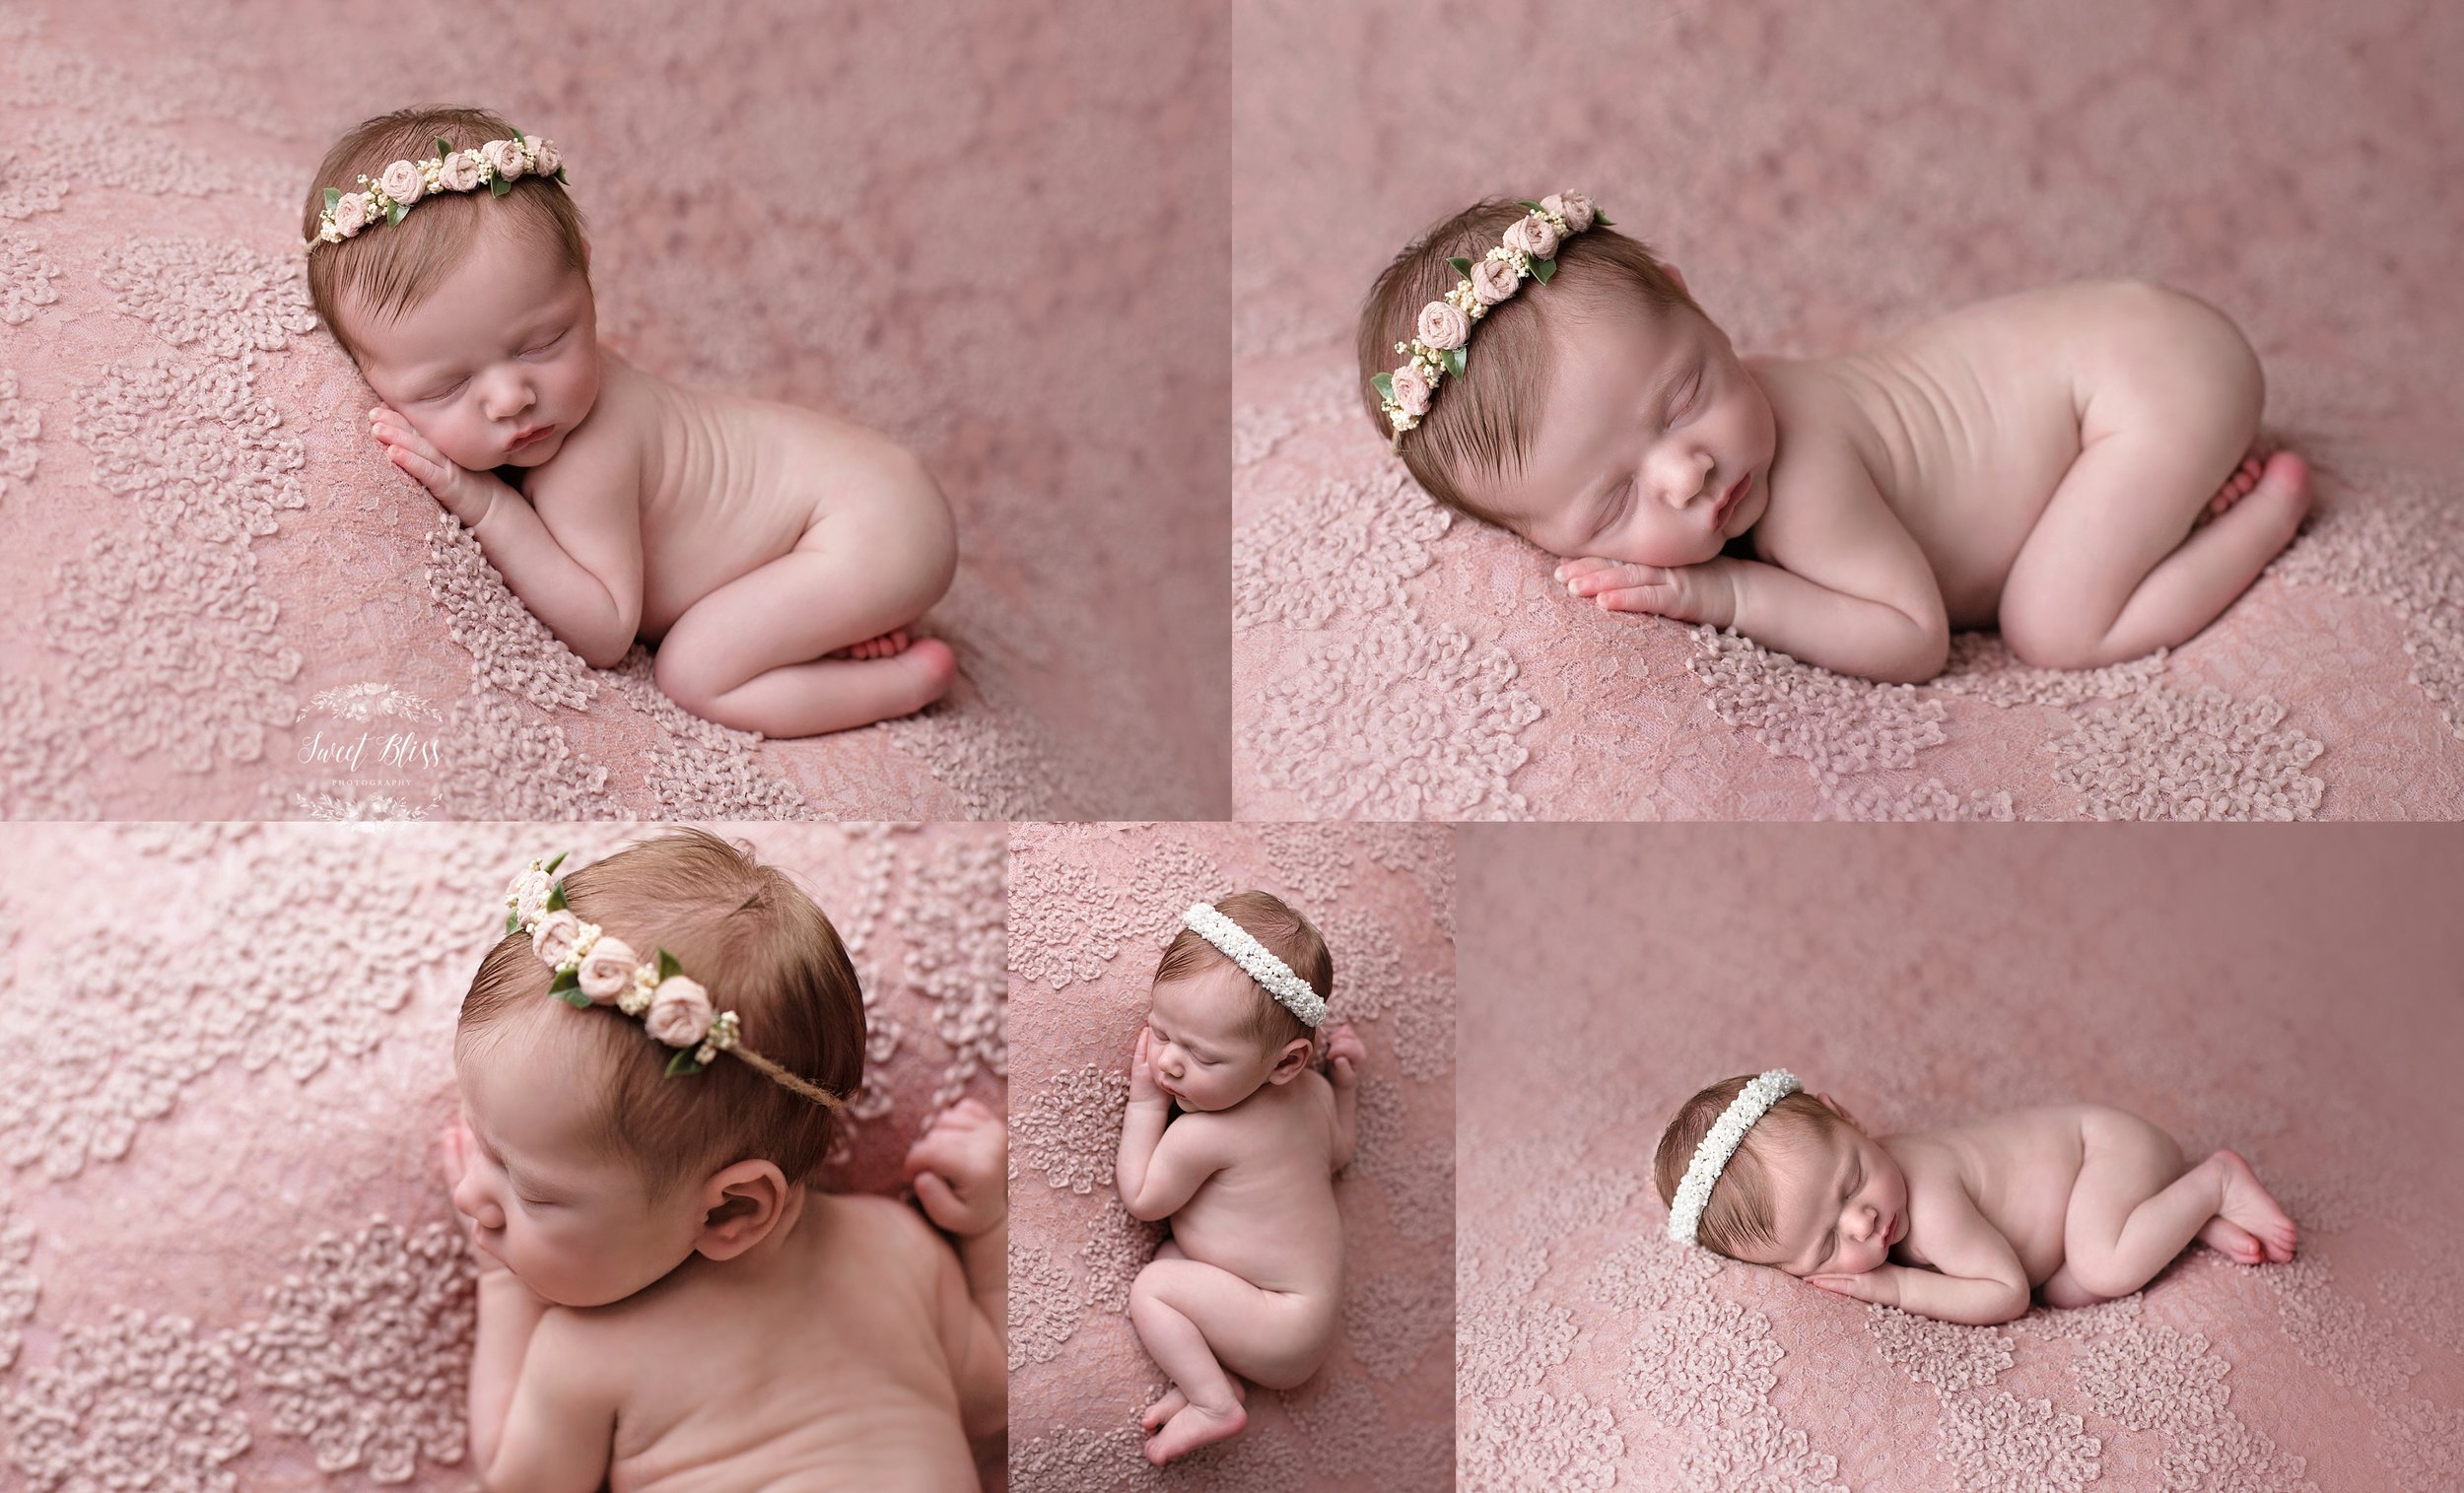 blush_baltimorenewborn_sweetblissphotography1.jpg